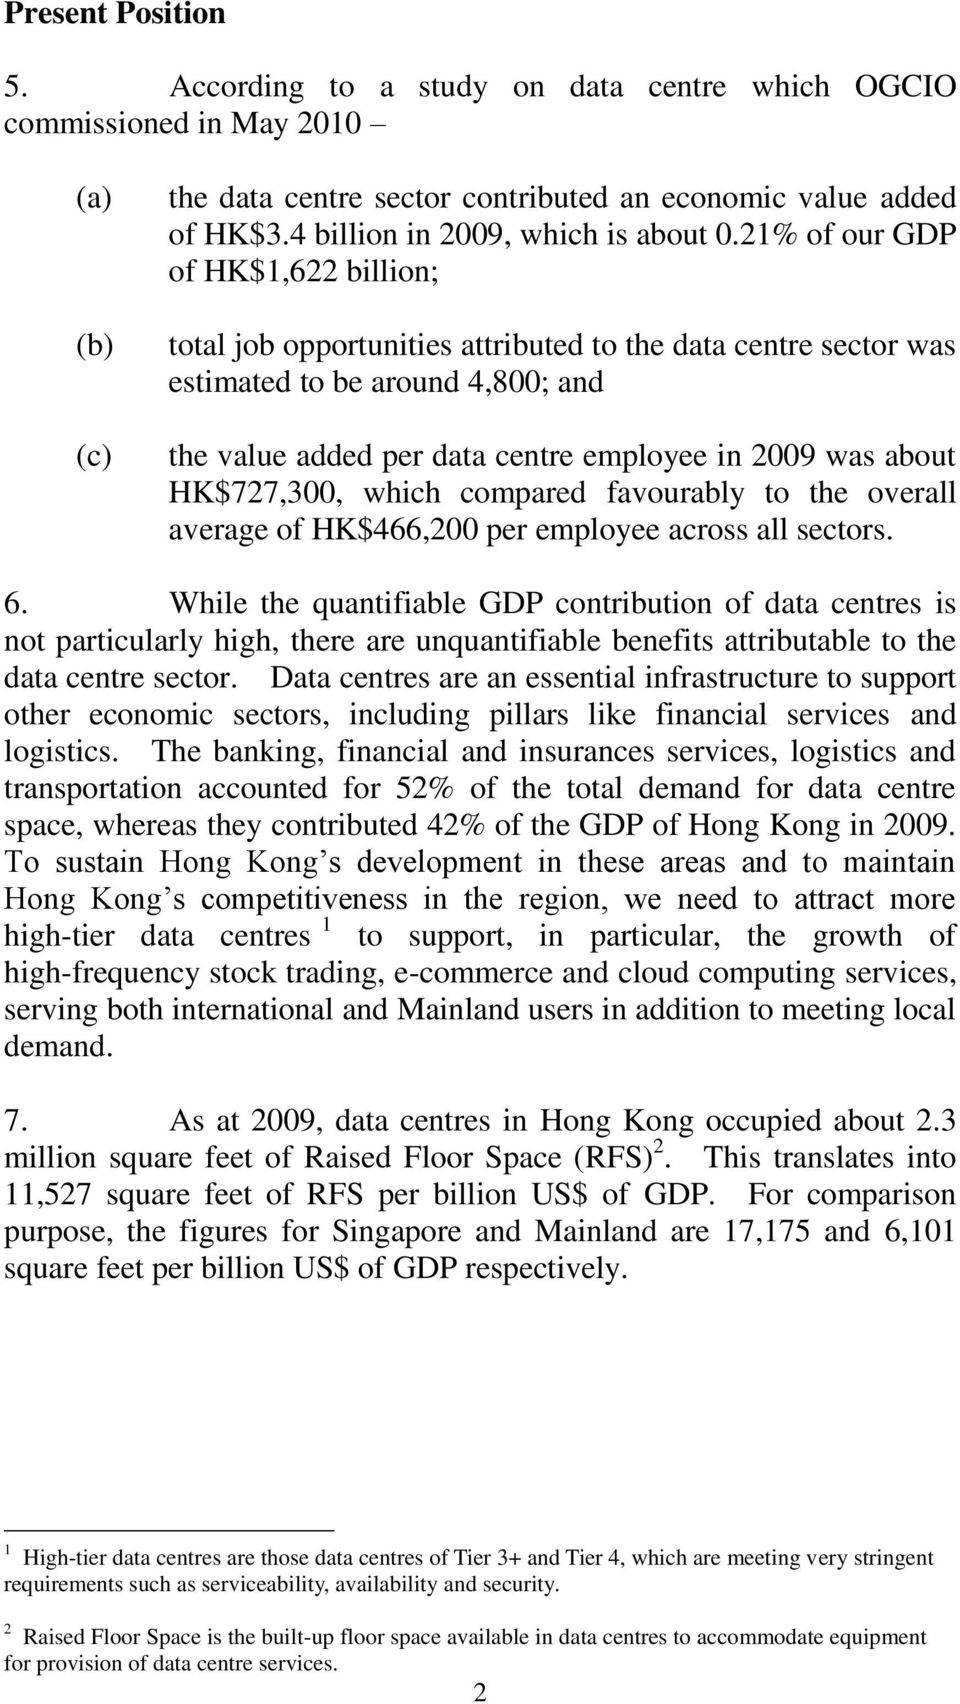 21% of our GDP of HK$1,622 billion; total job opportunities attributed to the data centre sector was estimated to be around 4,800; and the value added per data centre employee in 2009 was about